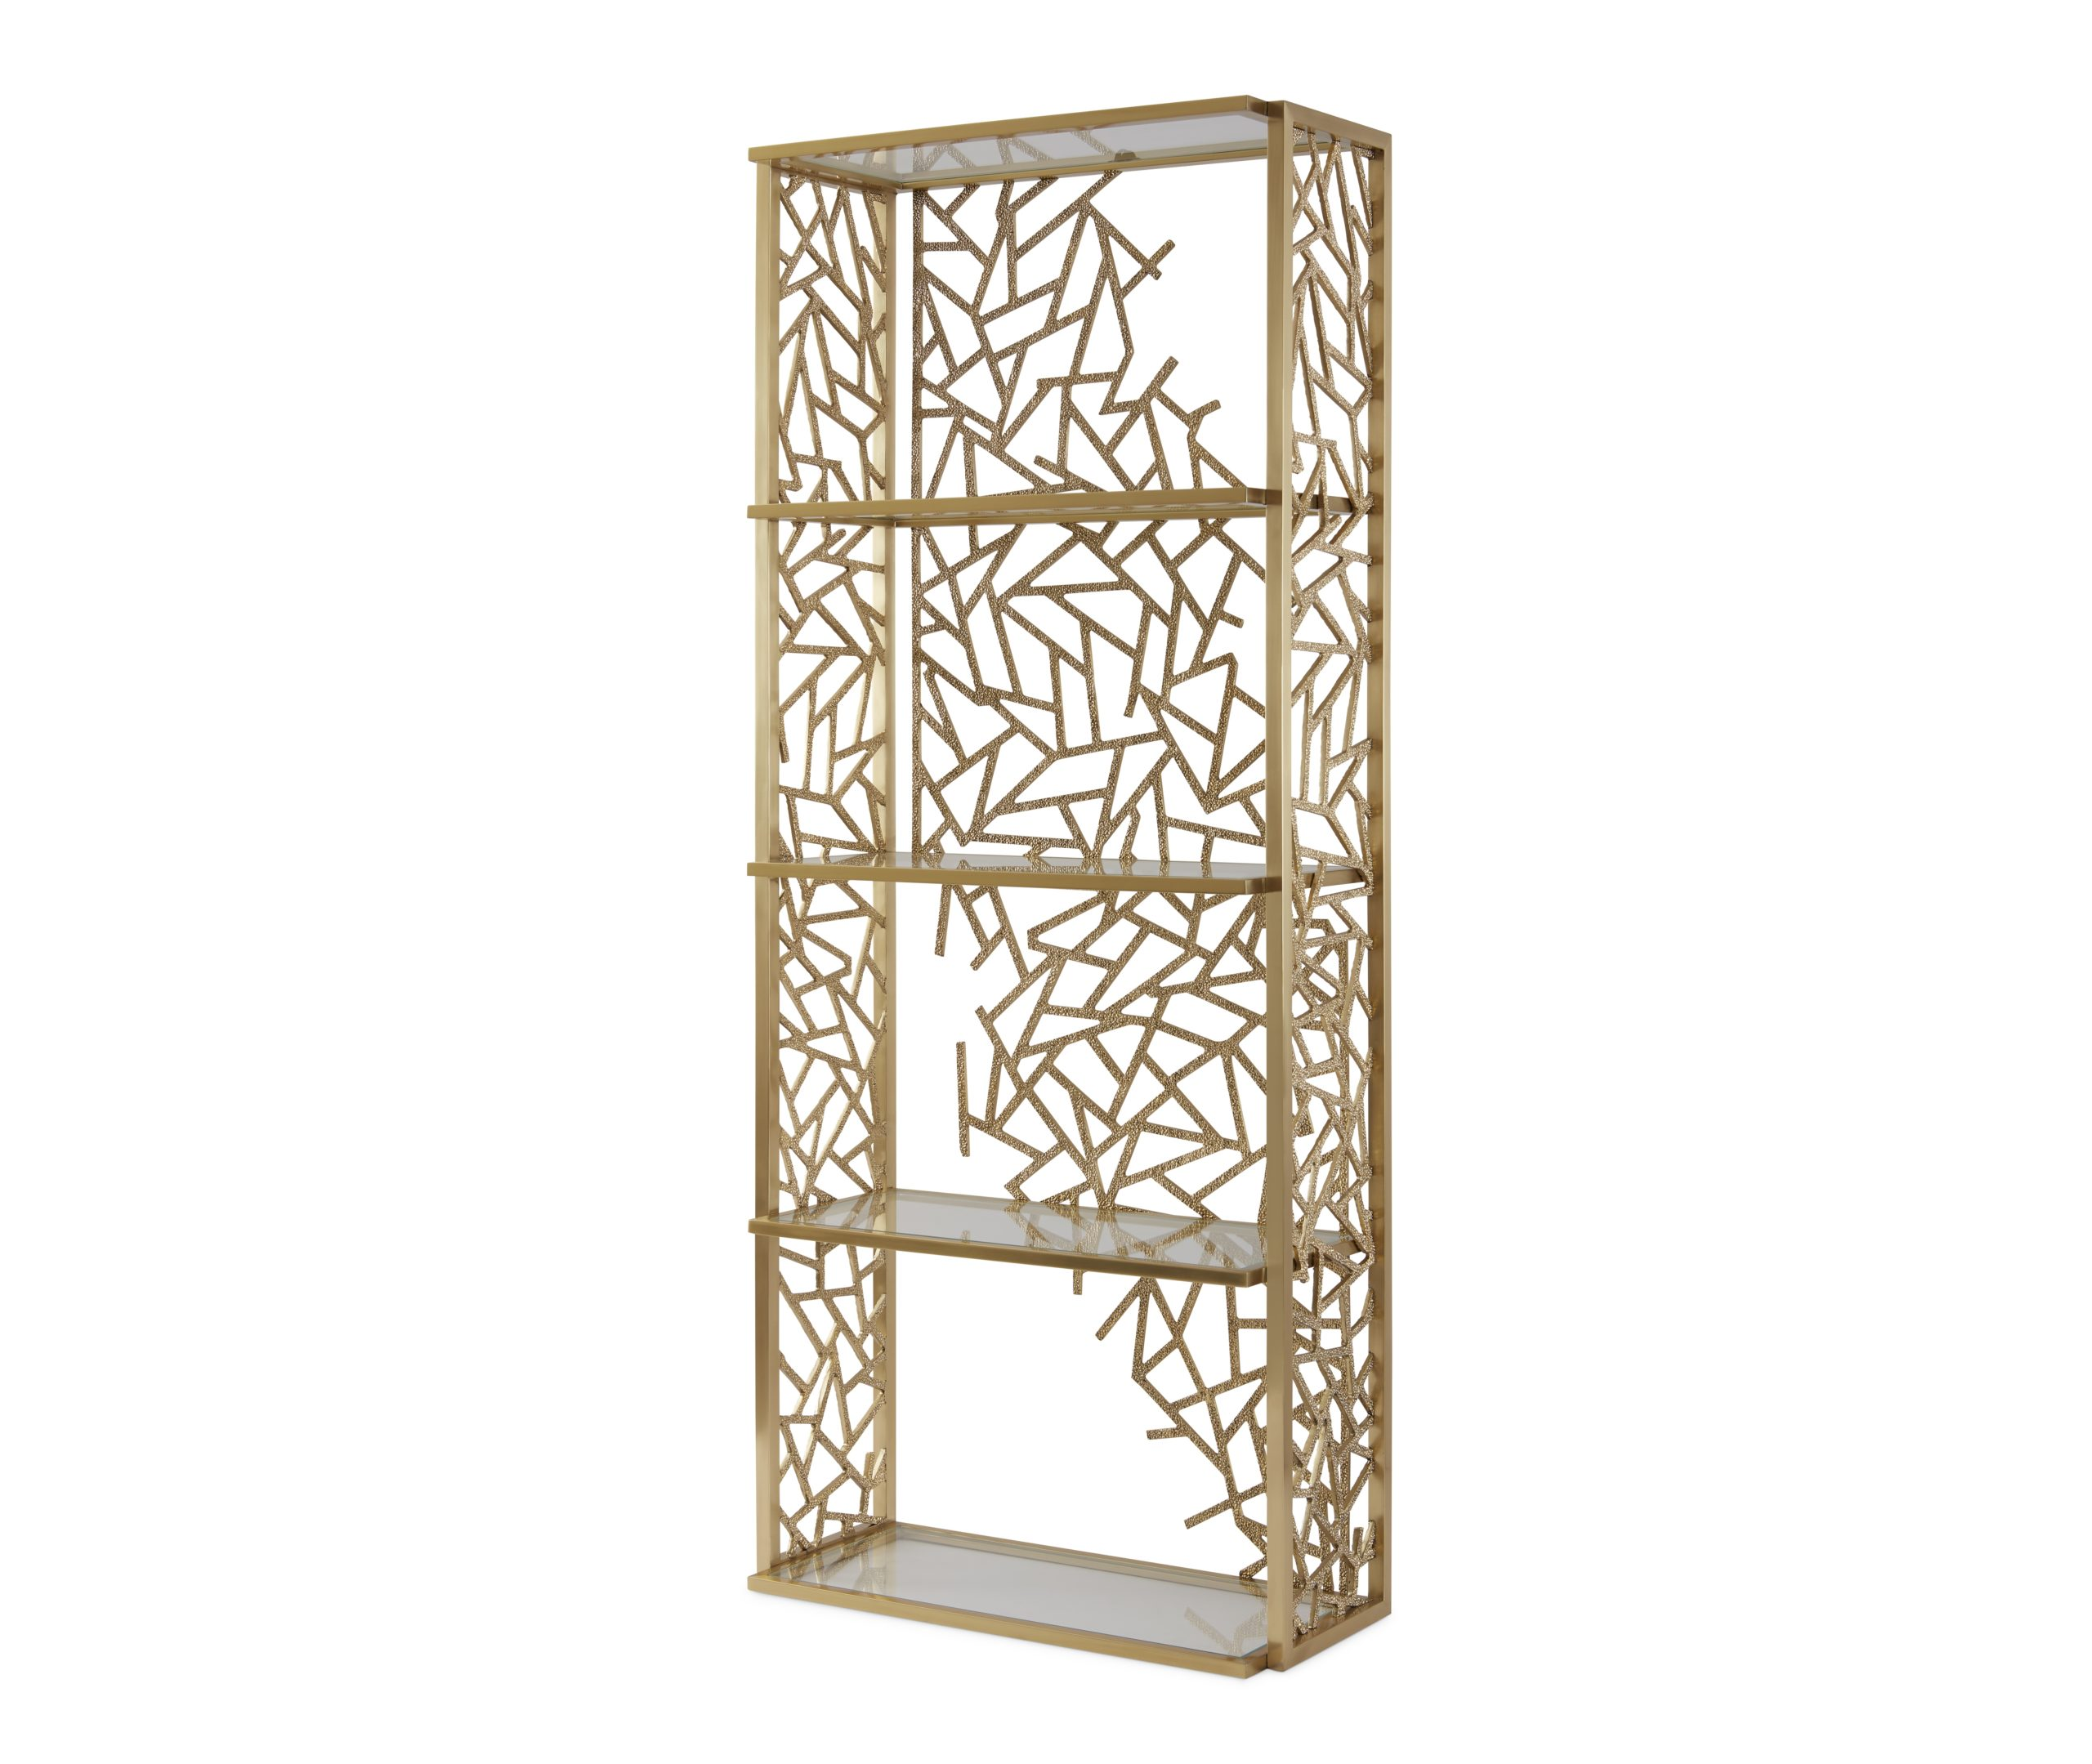 Baker_products_WNWN_infinite_etagere_BAA3295__FRONT_3QRT-scaled-1